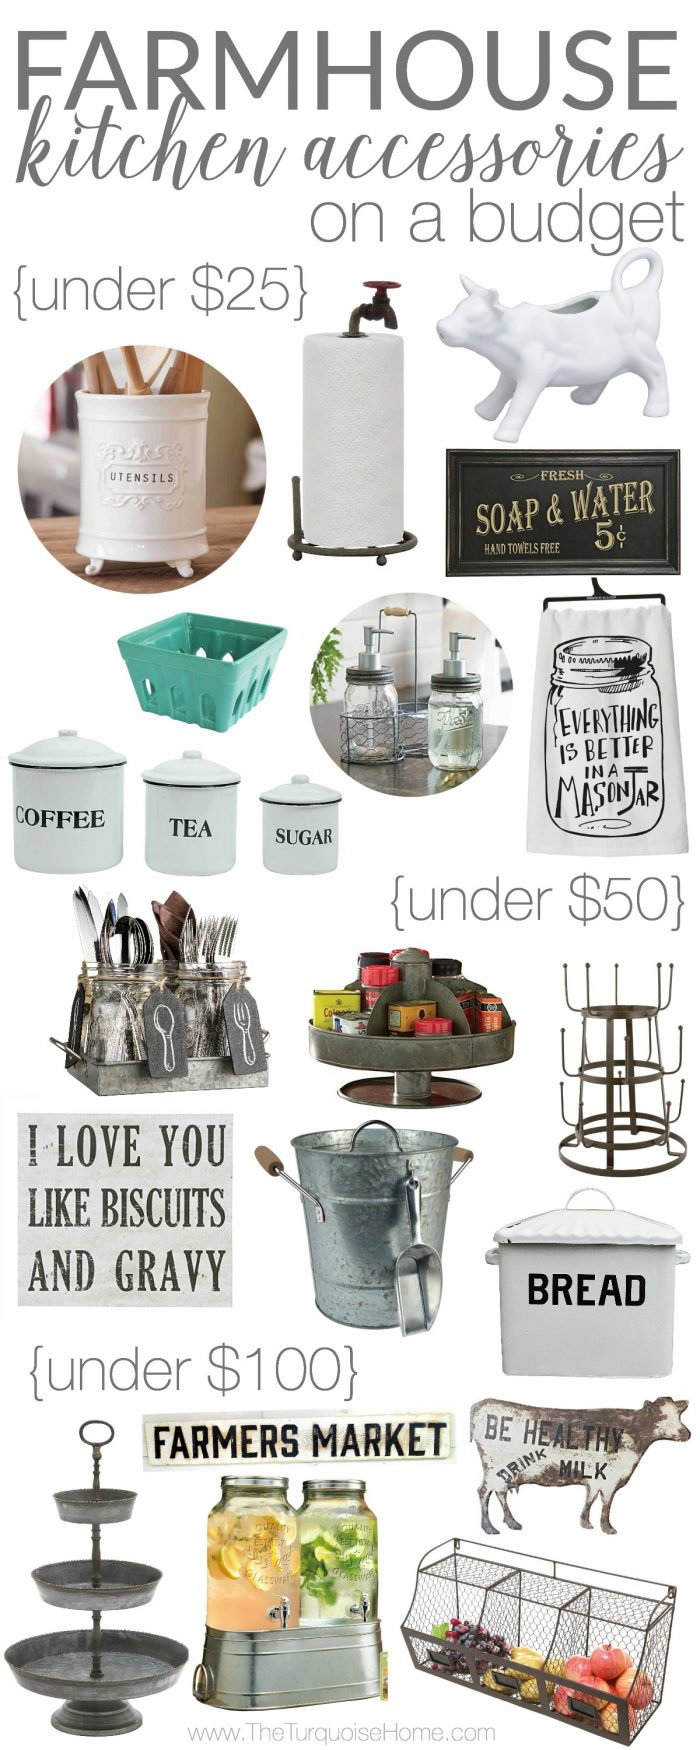 Kitchen Accessories And Decor Farmhouse Kitchen Accessories On A Budget